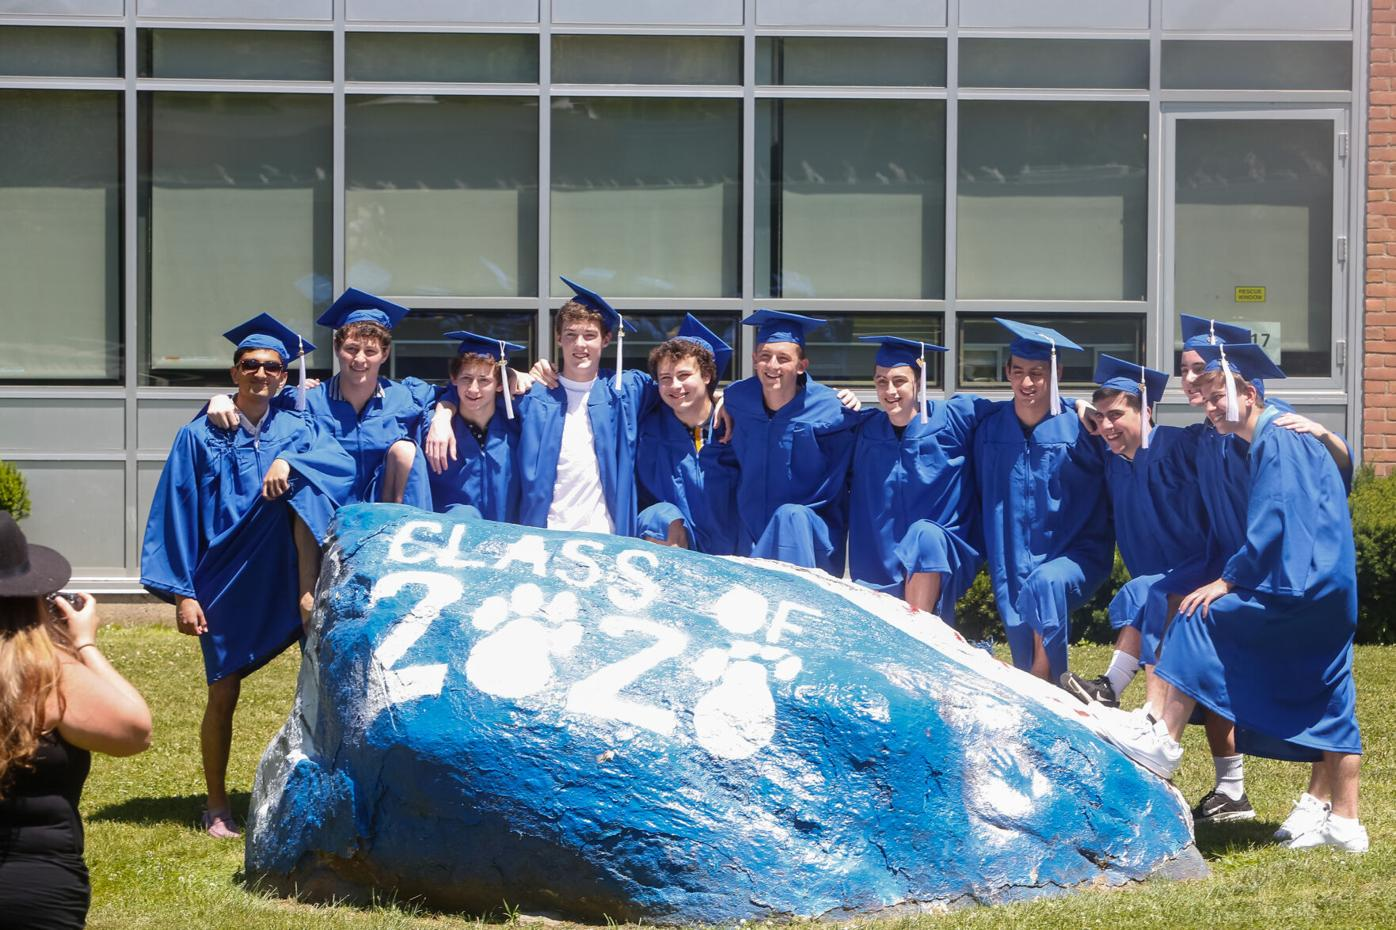 Edgemont group 4 copy.jpg